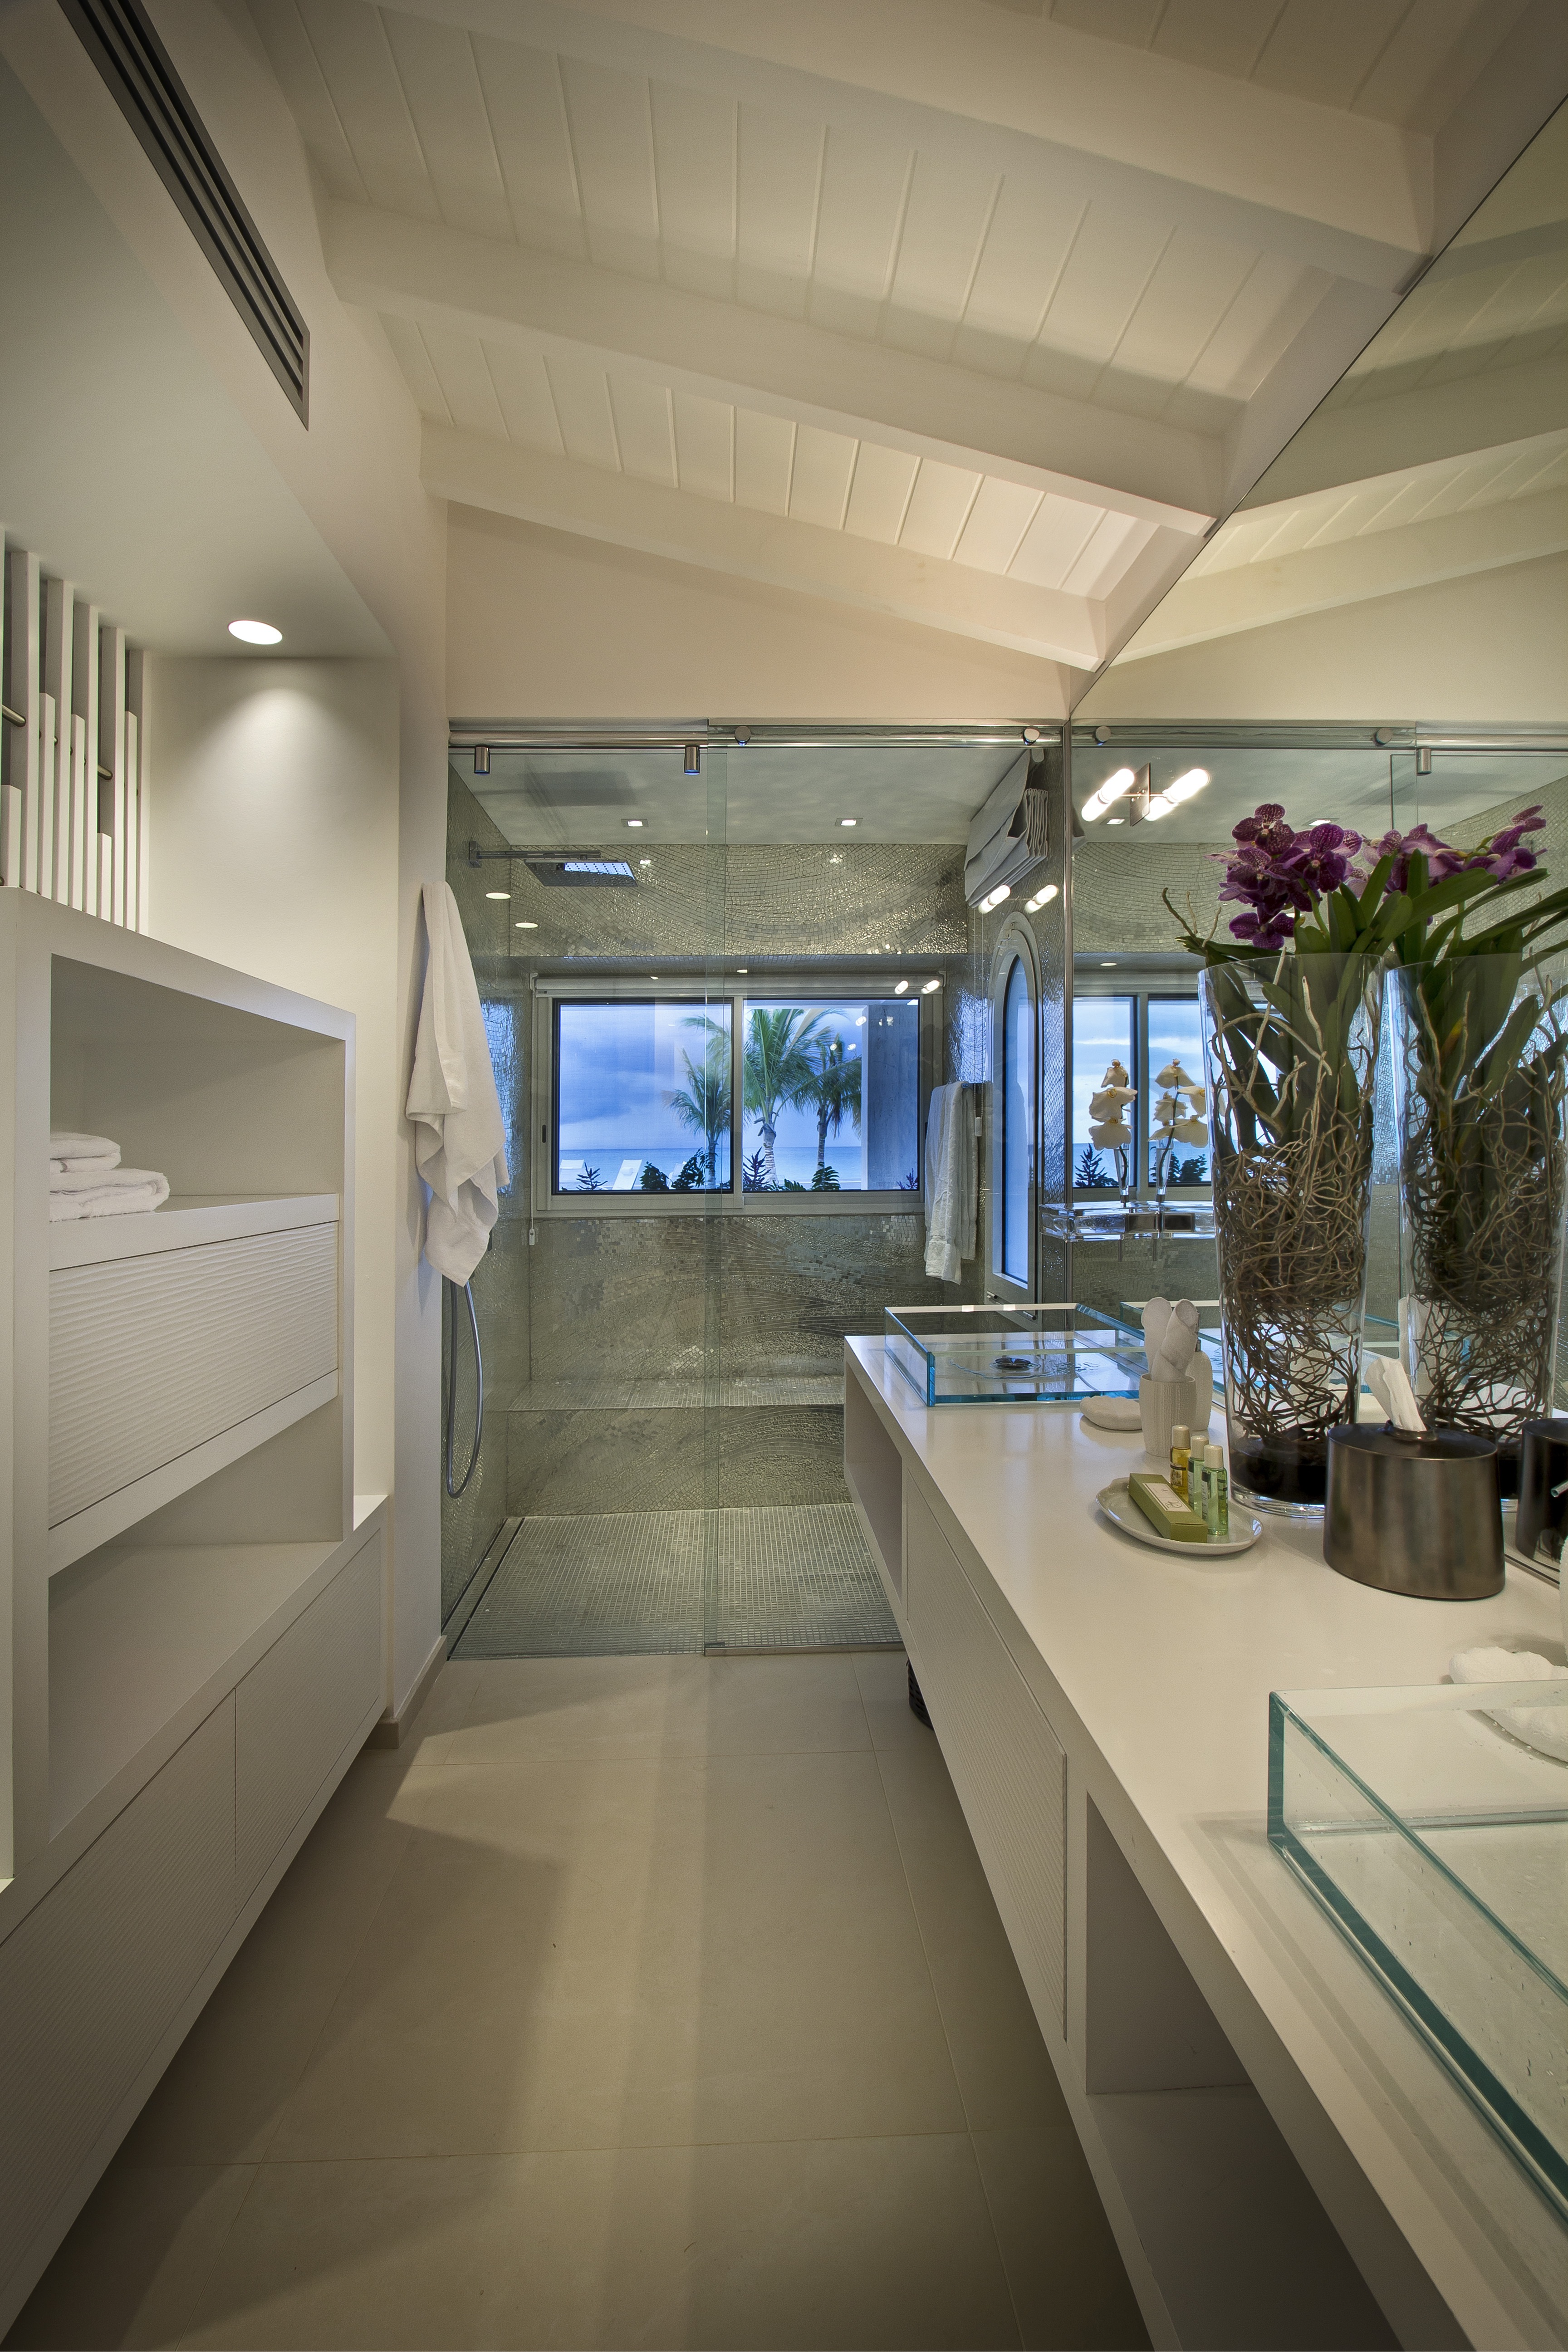 Modern Angled Ceiling For Contemporary Bathroom (View 1 of 31)